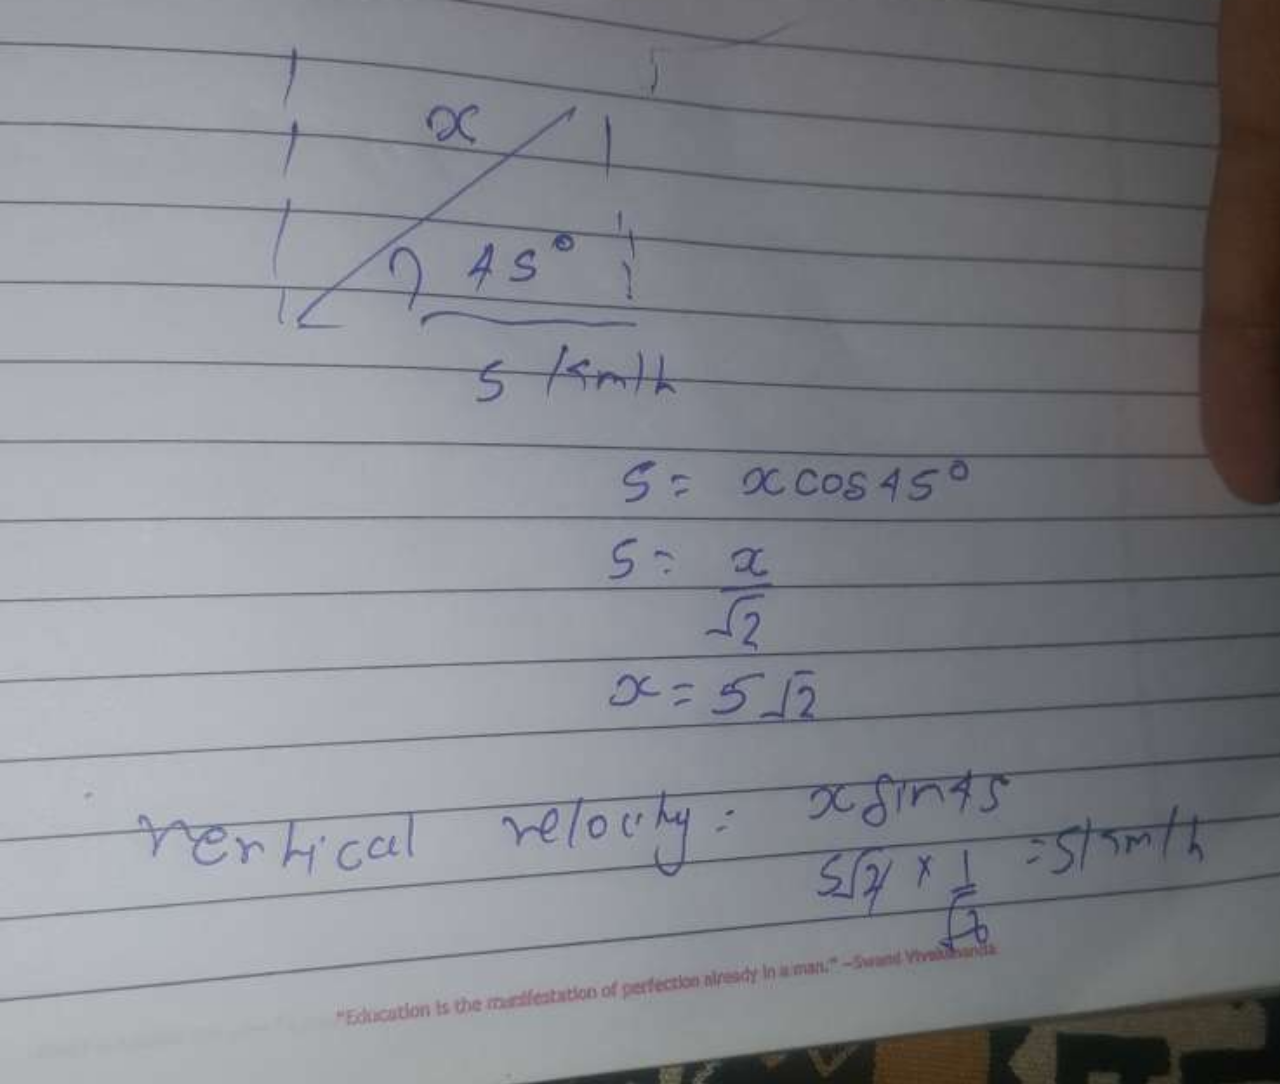 A man walks in rain with a velocity of 5kmh^−1. The rain drops strike at him at an angle of 45∘ with the horizontal. The velocity of the rain if it is falling vertically downward is